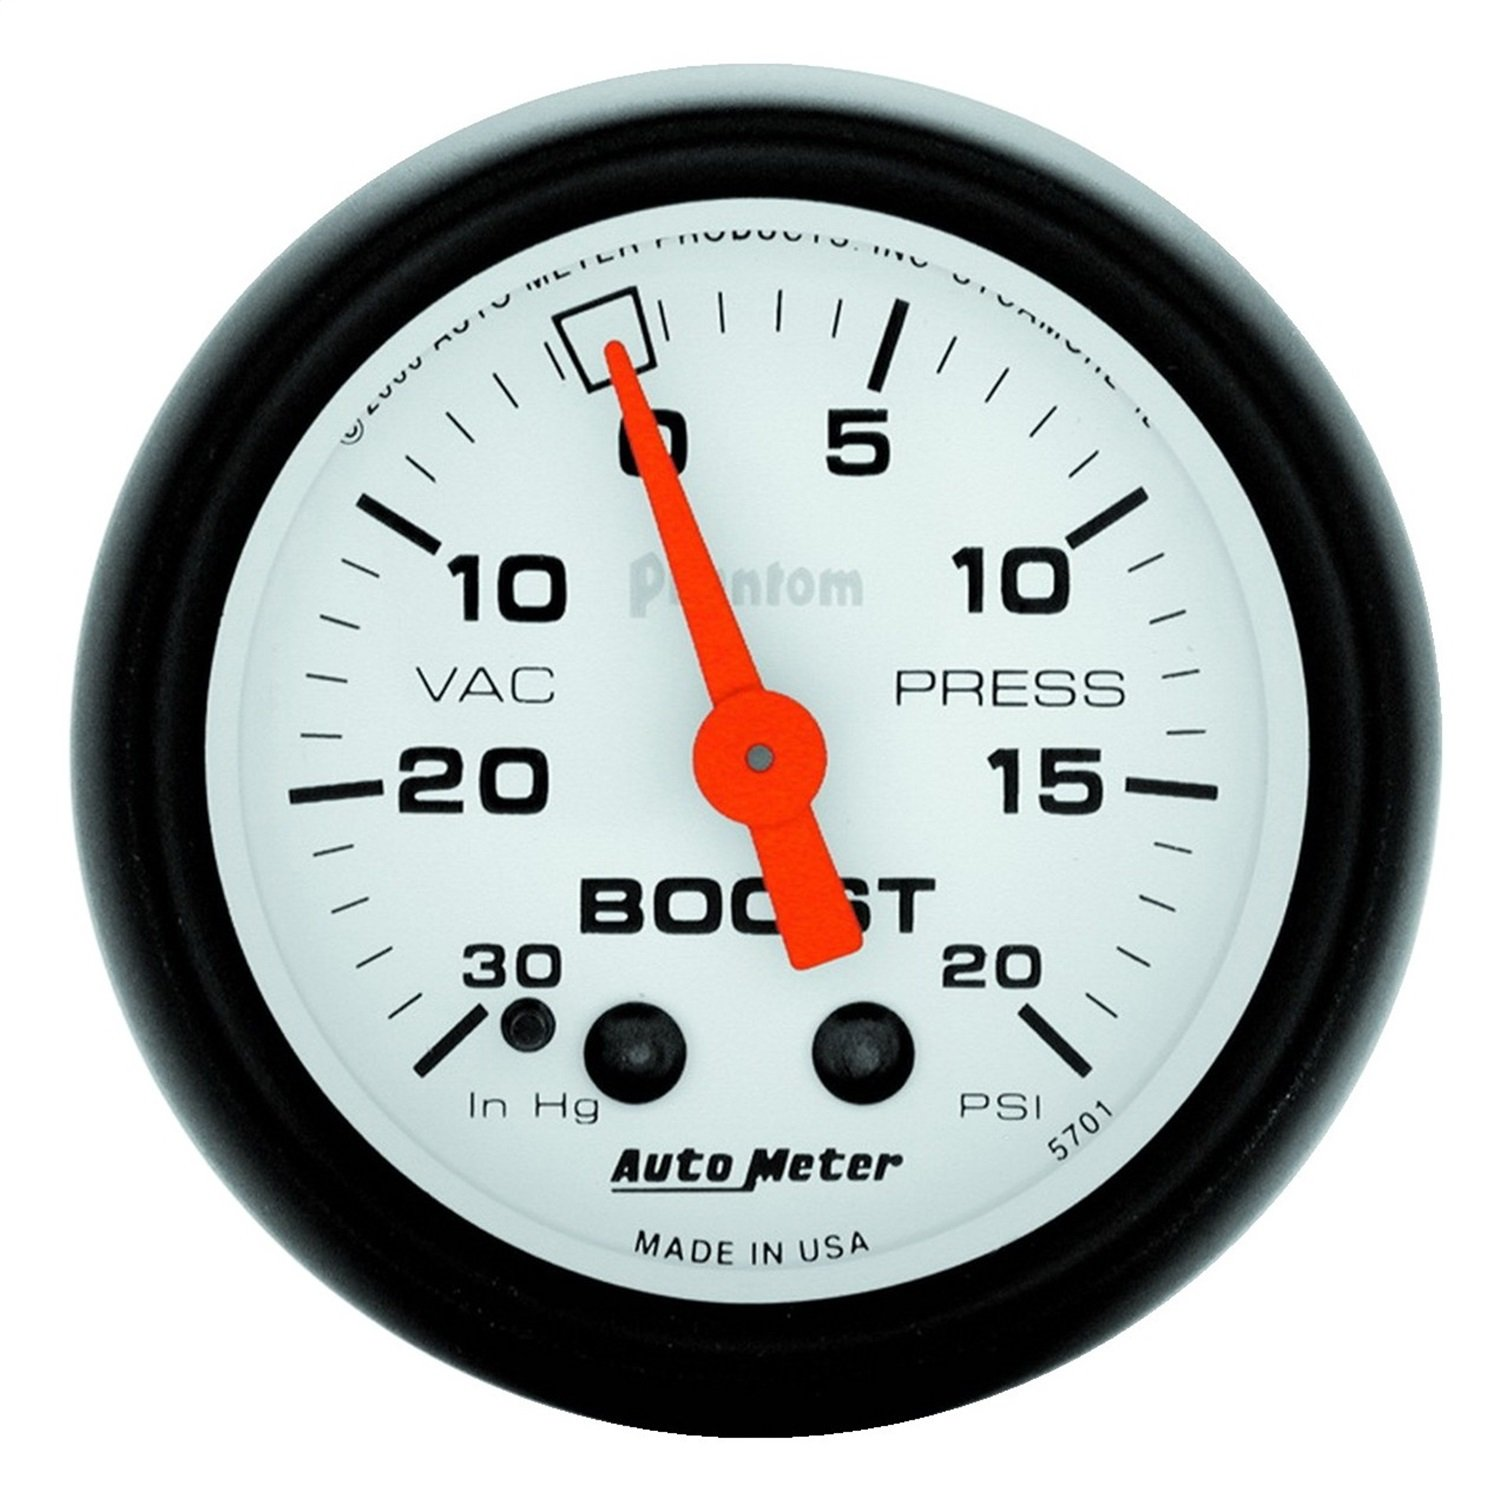 Auto Meter 5701 Phantom Mechanical Boost/Vacuum Gauge by AUTO METER